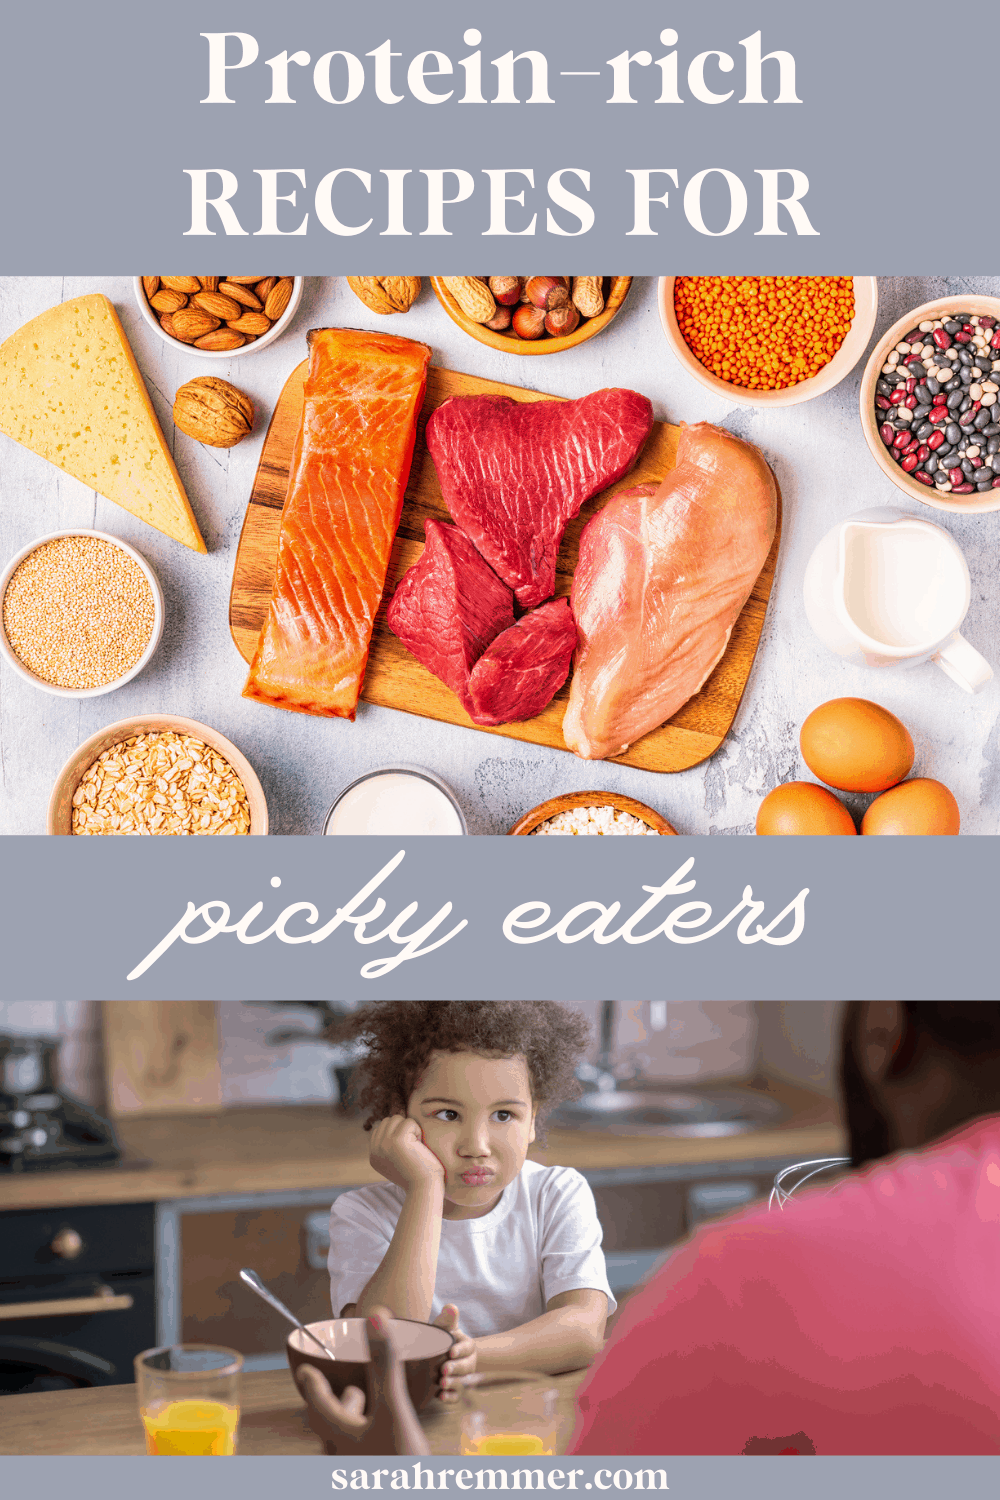 Learn why protein-rich foods are important for your child, how much they need and what to do if your child is a picky eater and struggling to get enough protein (plus: protein-rich meal and snack ideas to try!).